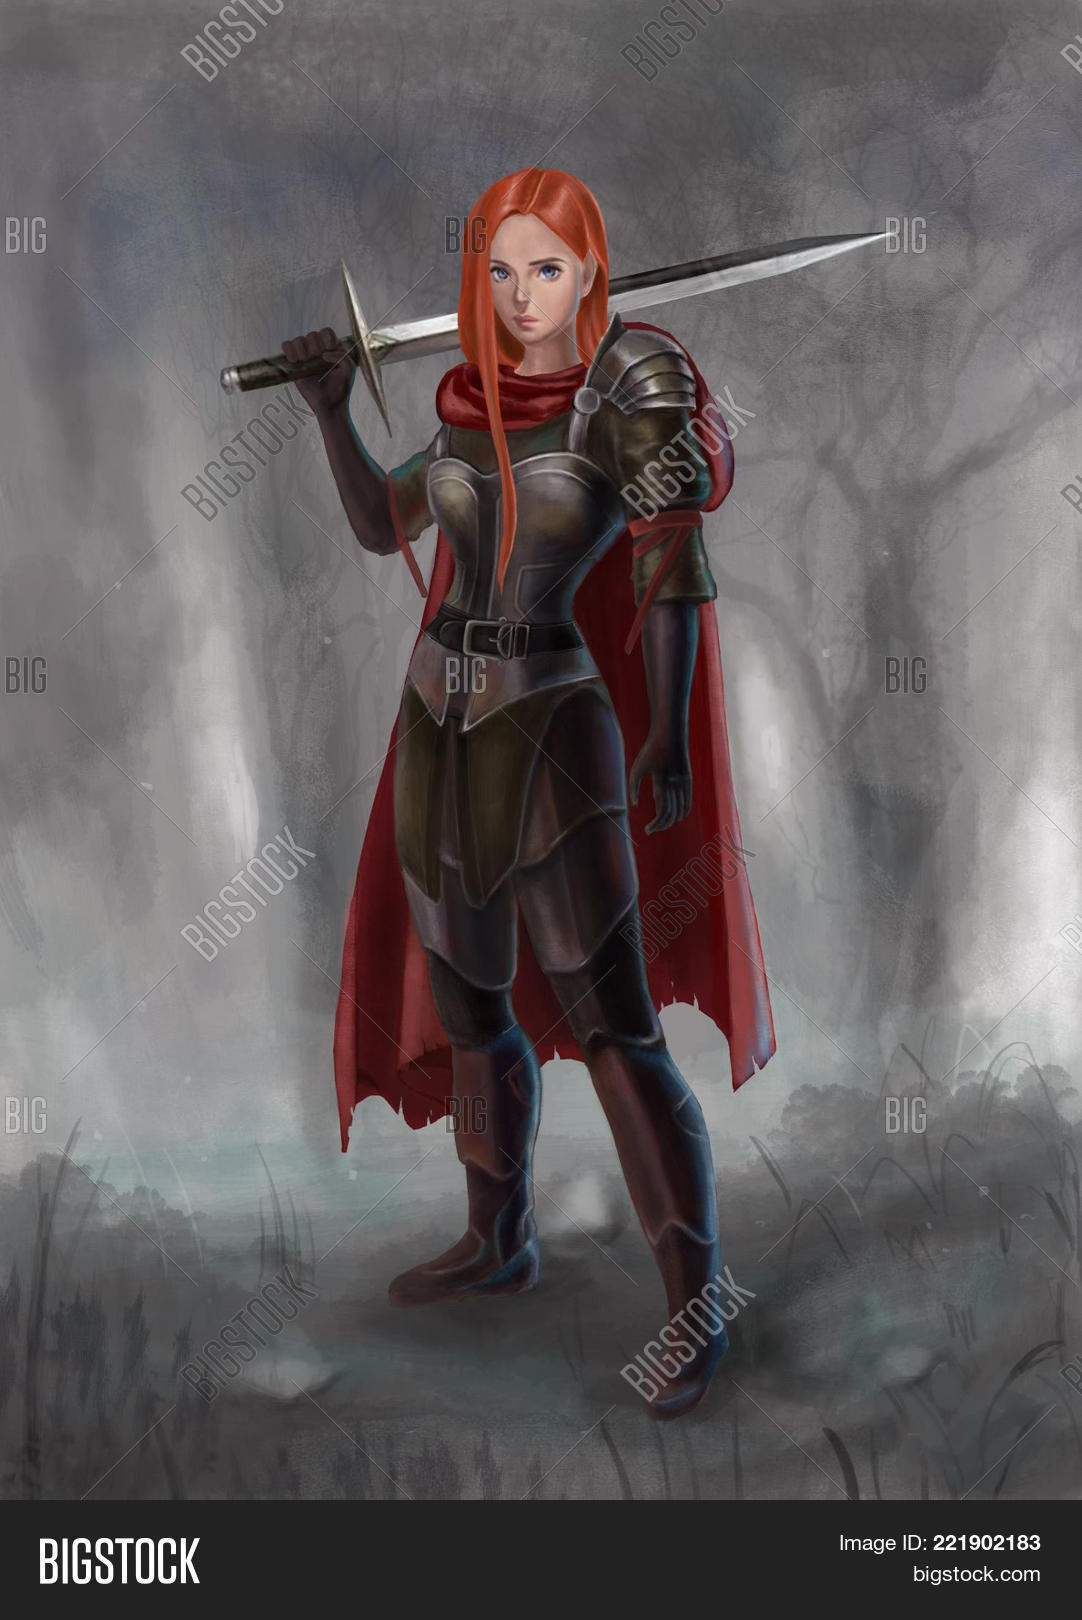 Fantasy Character, Image & Photo (Free Trial) | Bigstock